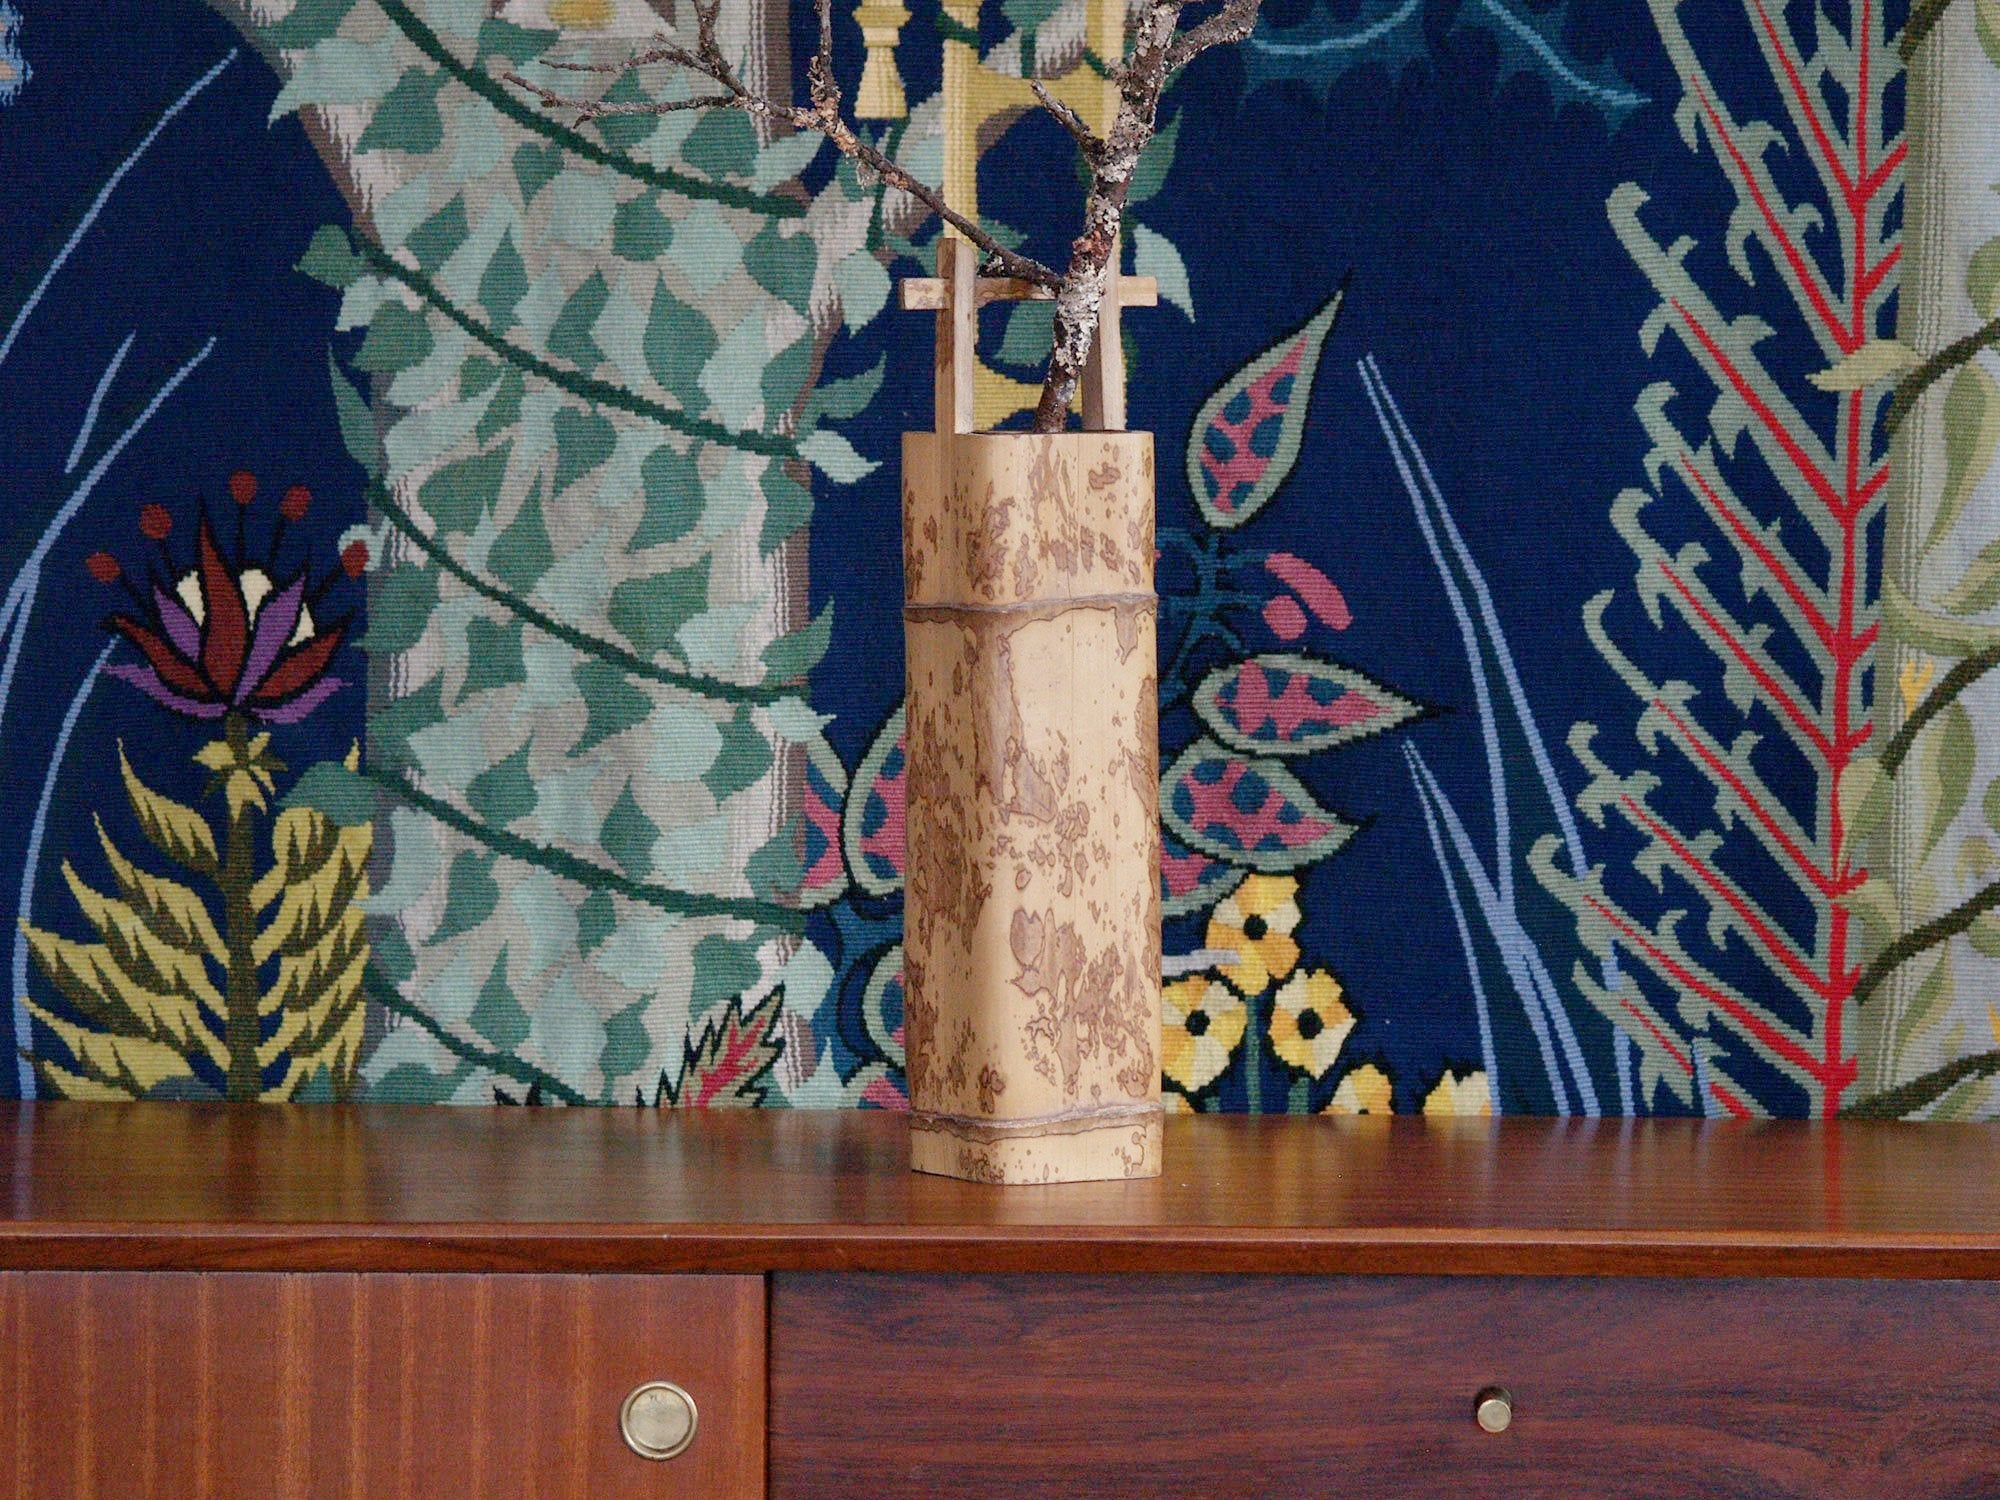 Takehanaire, vase en bambou torachiku pour la cérémonie du thé, Japon (Fin ère Meiji / début ère Shōwa)..Takehanaire, Torachiku Bamboo vase for tea ceremony chabana, Japan (Late Meiji era / Early Shōwa era)